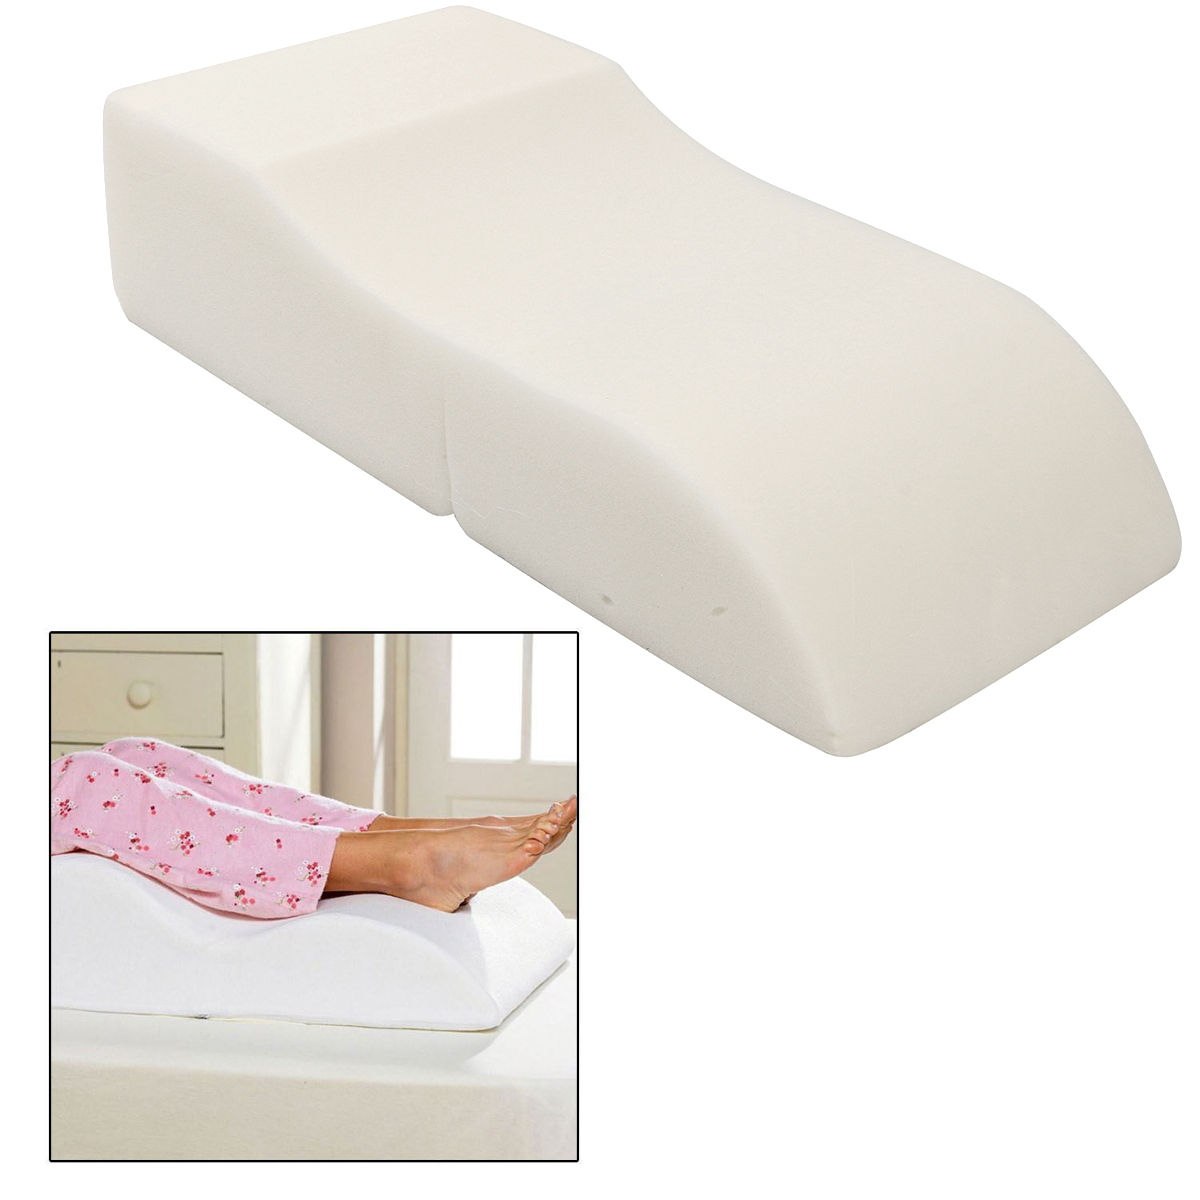 S Shape Sponge Portable Travel Footrest Leg Raiser Pillow Plane Train Body Bed Foot Rest Relax Support Pillow Pad Massage Pillow